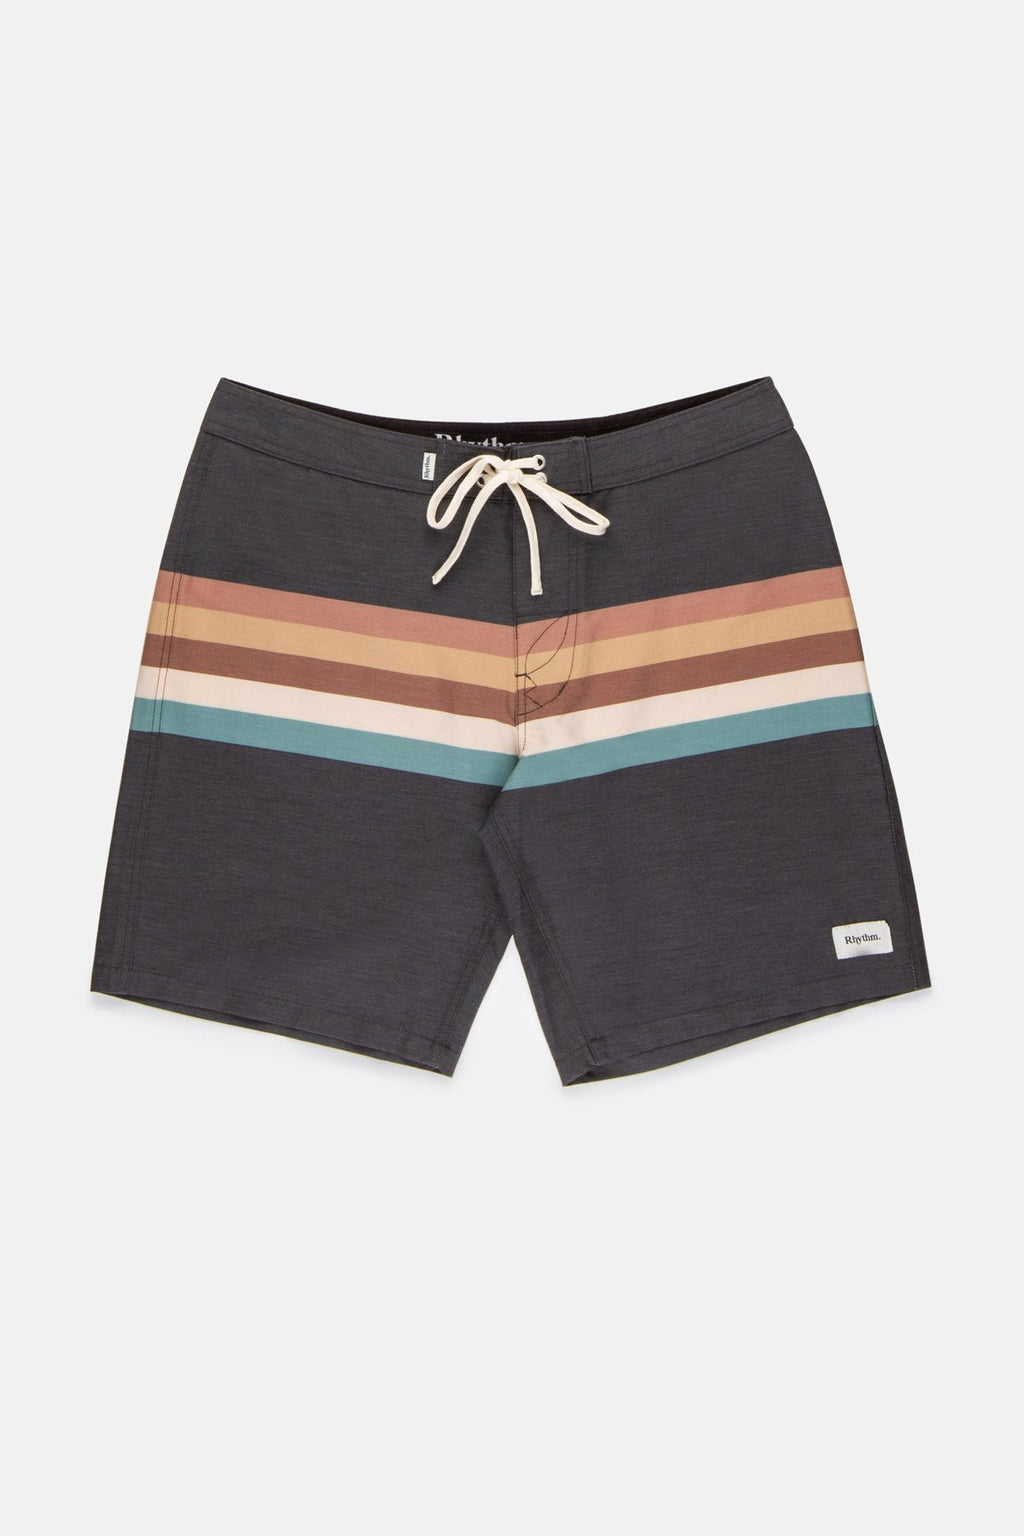 Rhythm Stripe Trunk Black